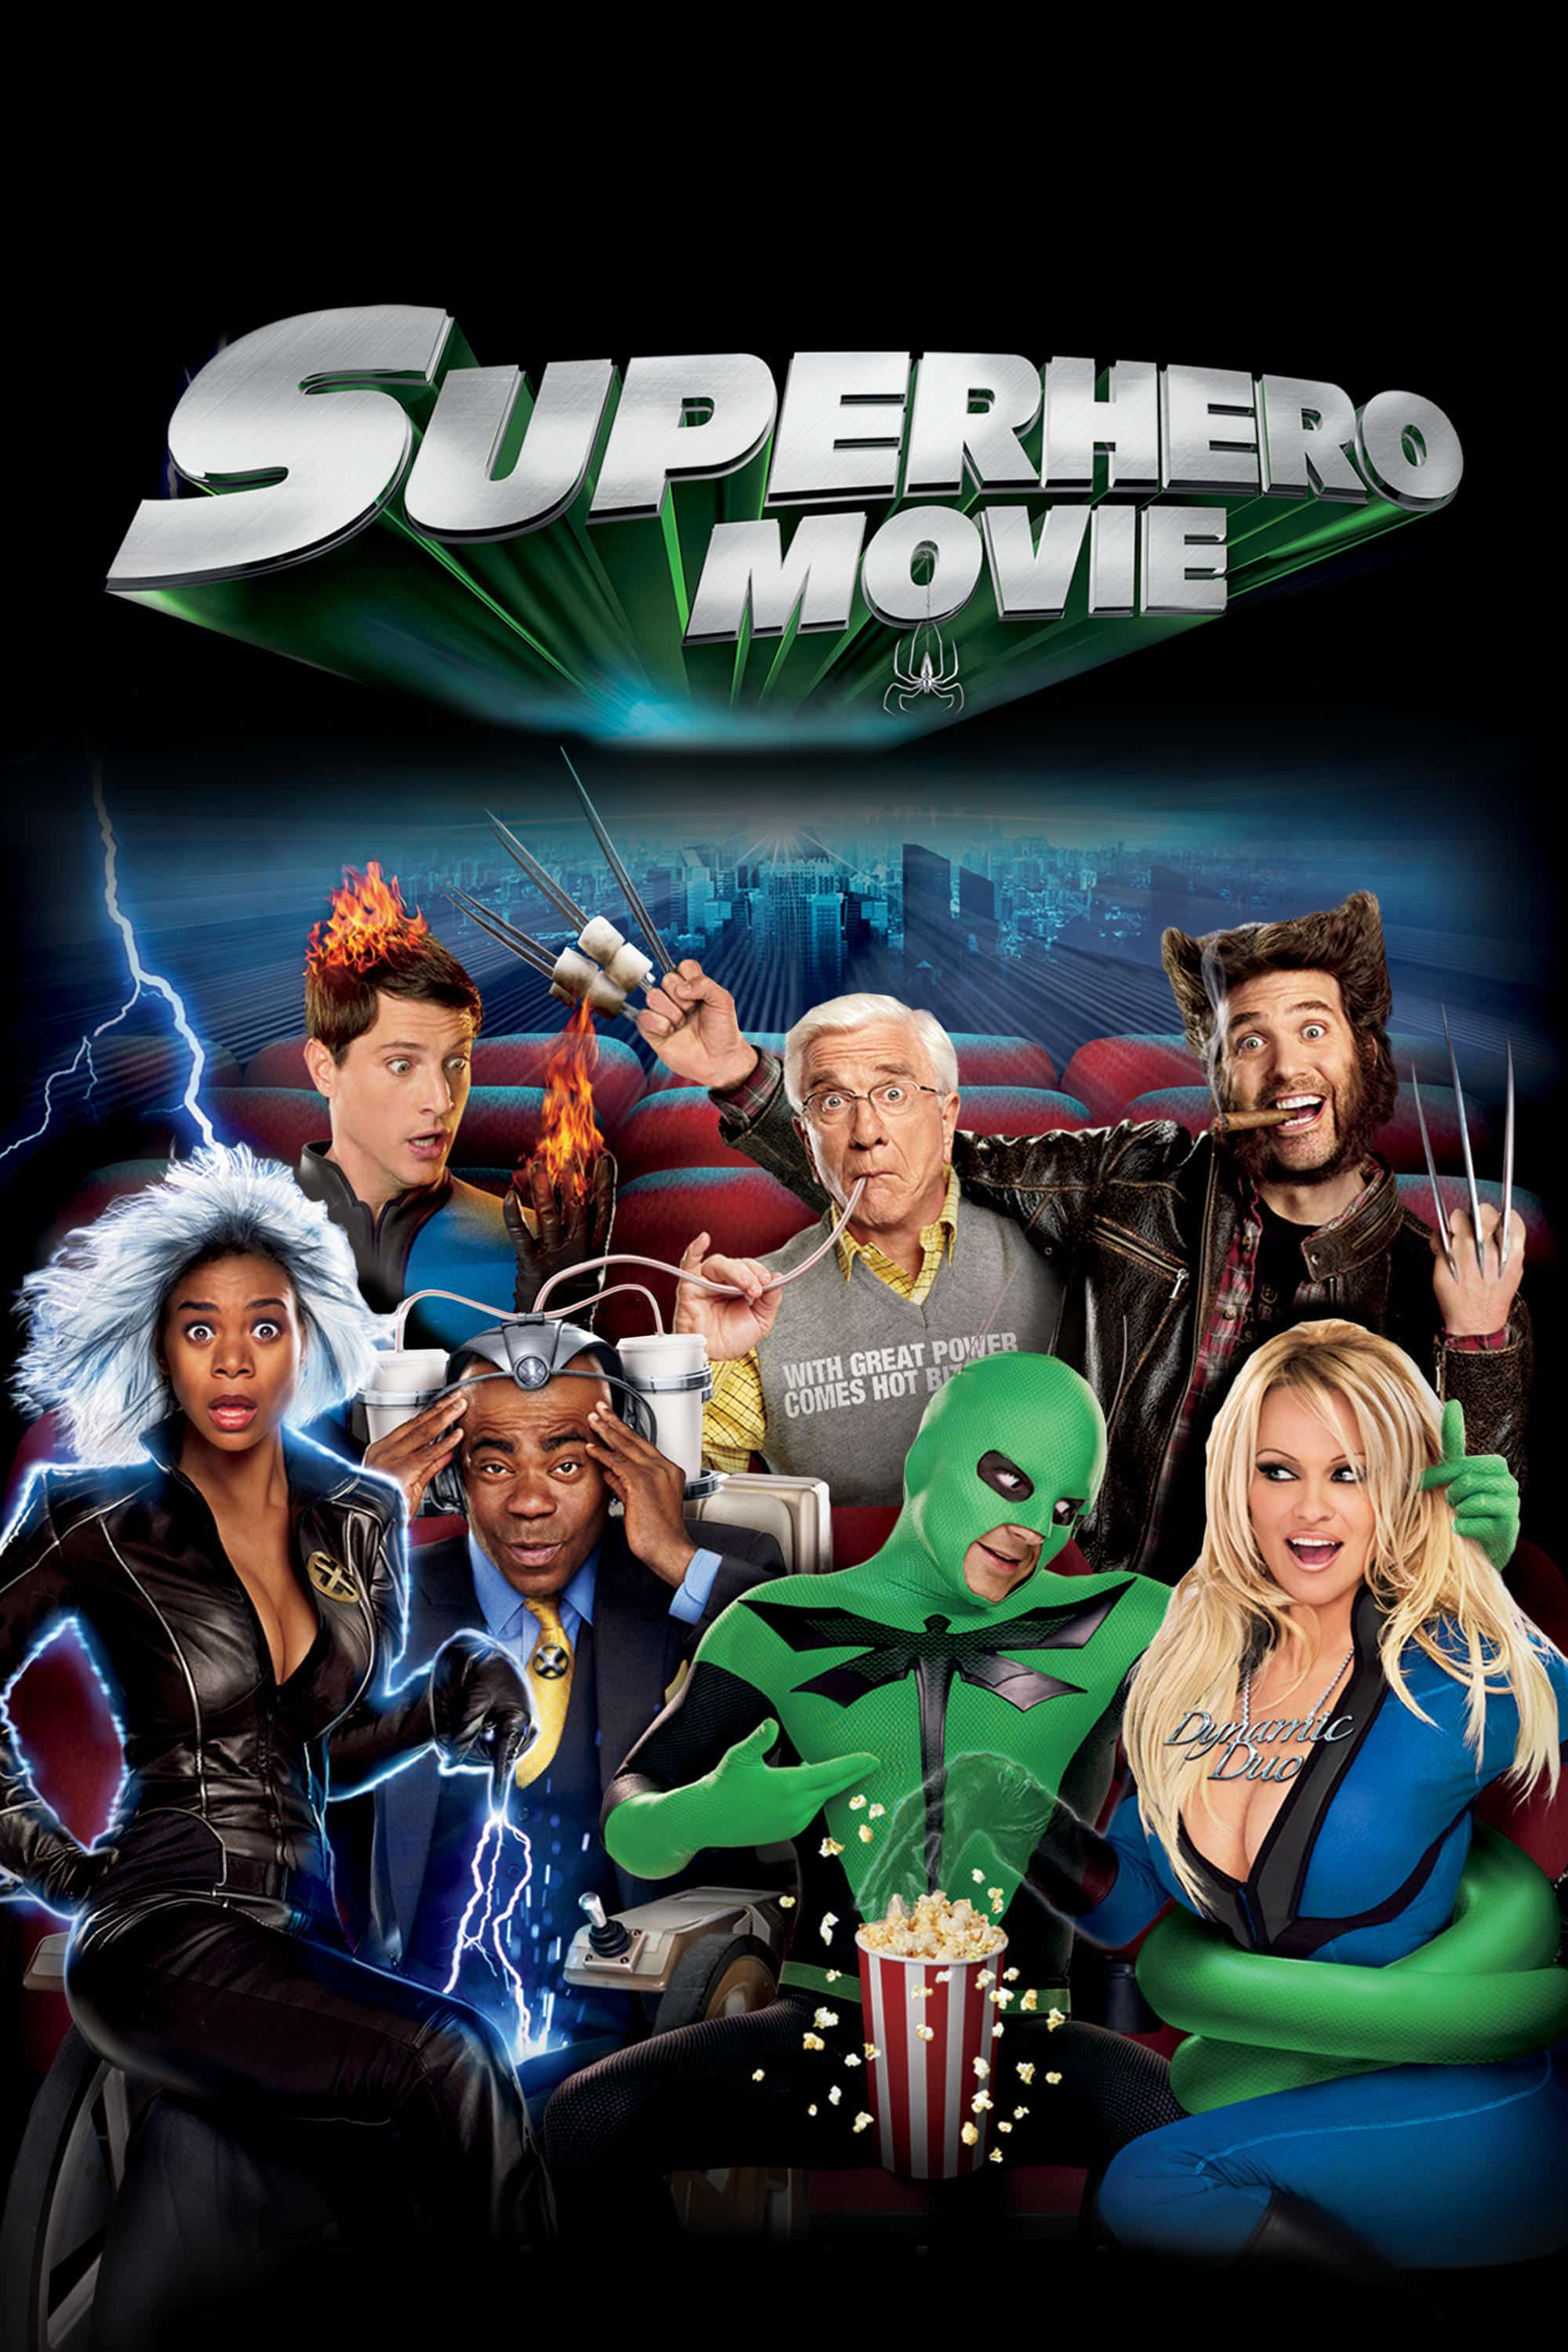 Superhero Movie, 2008